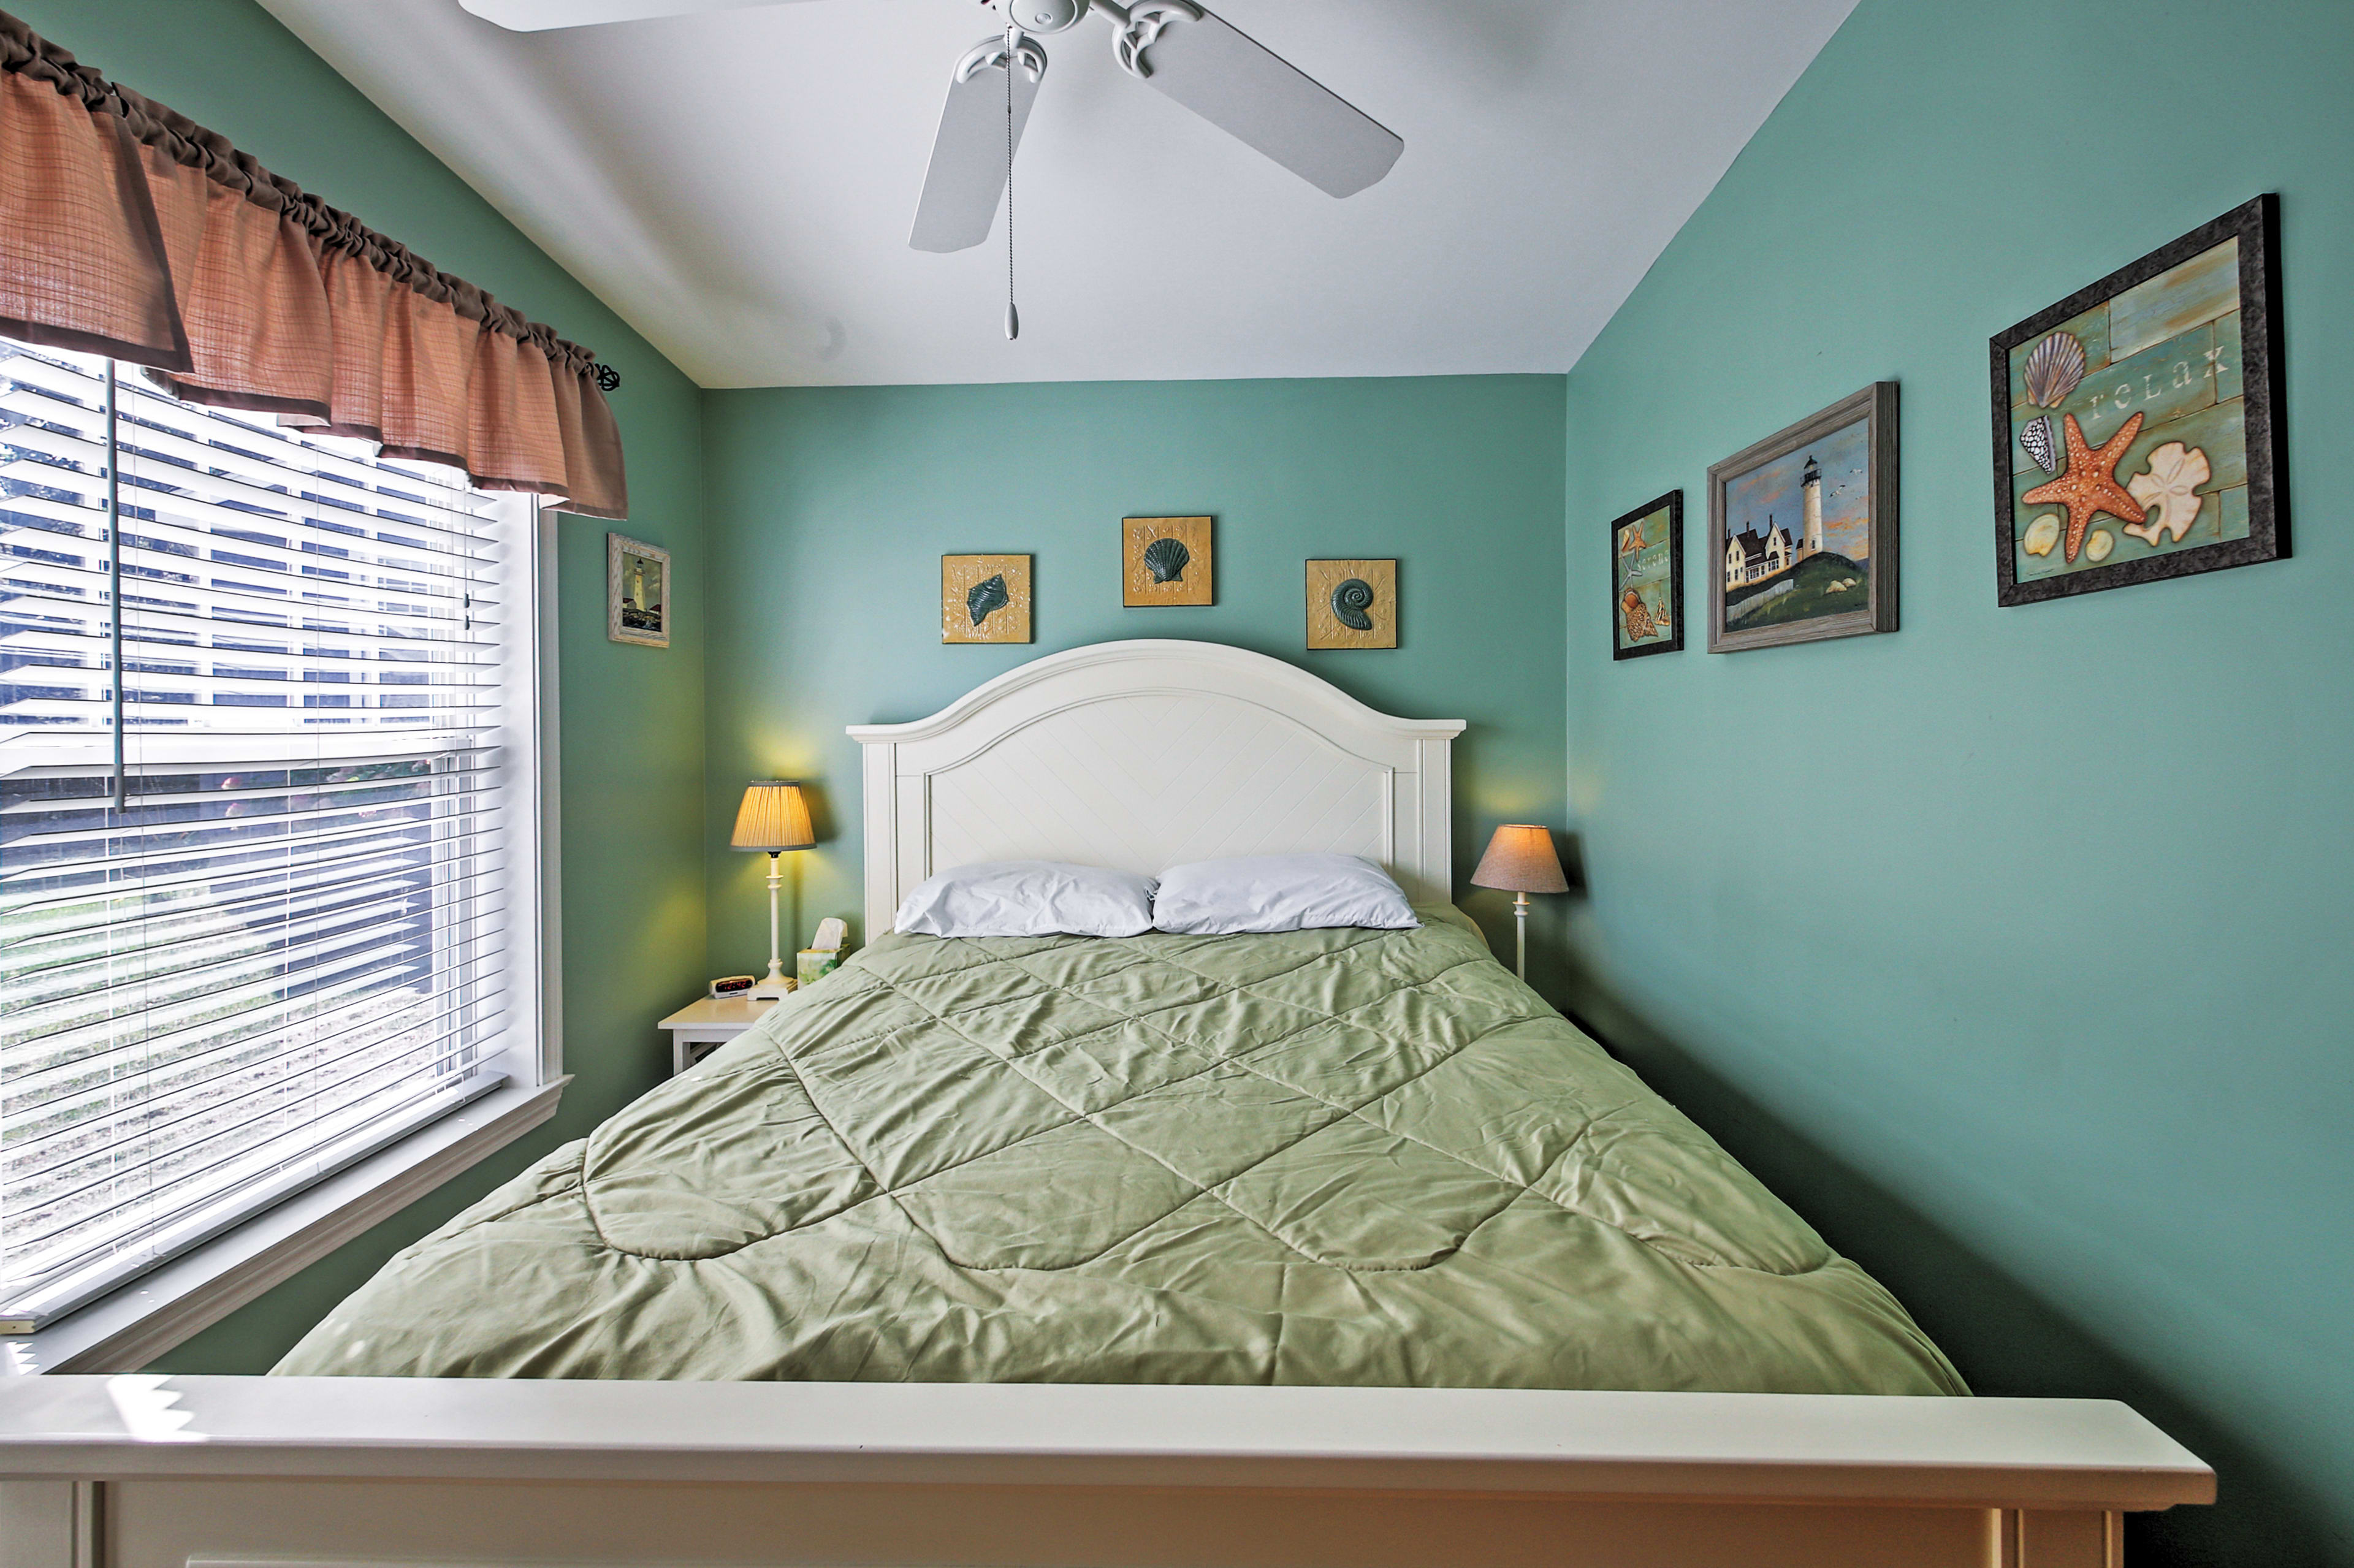 Enjoy a restful night on the queen bed in this bedroom.